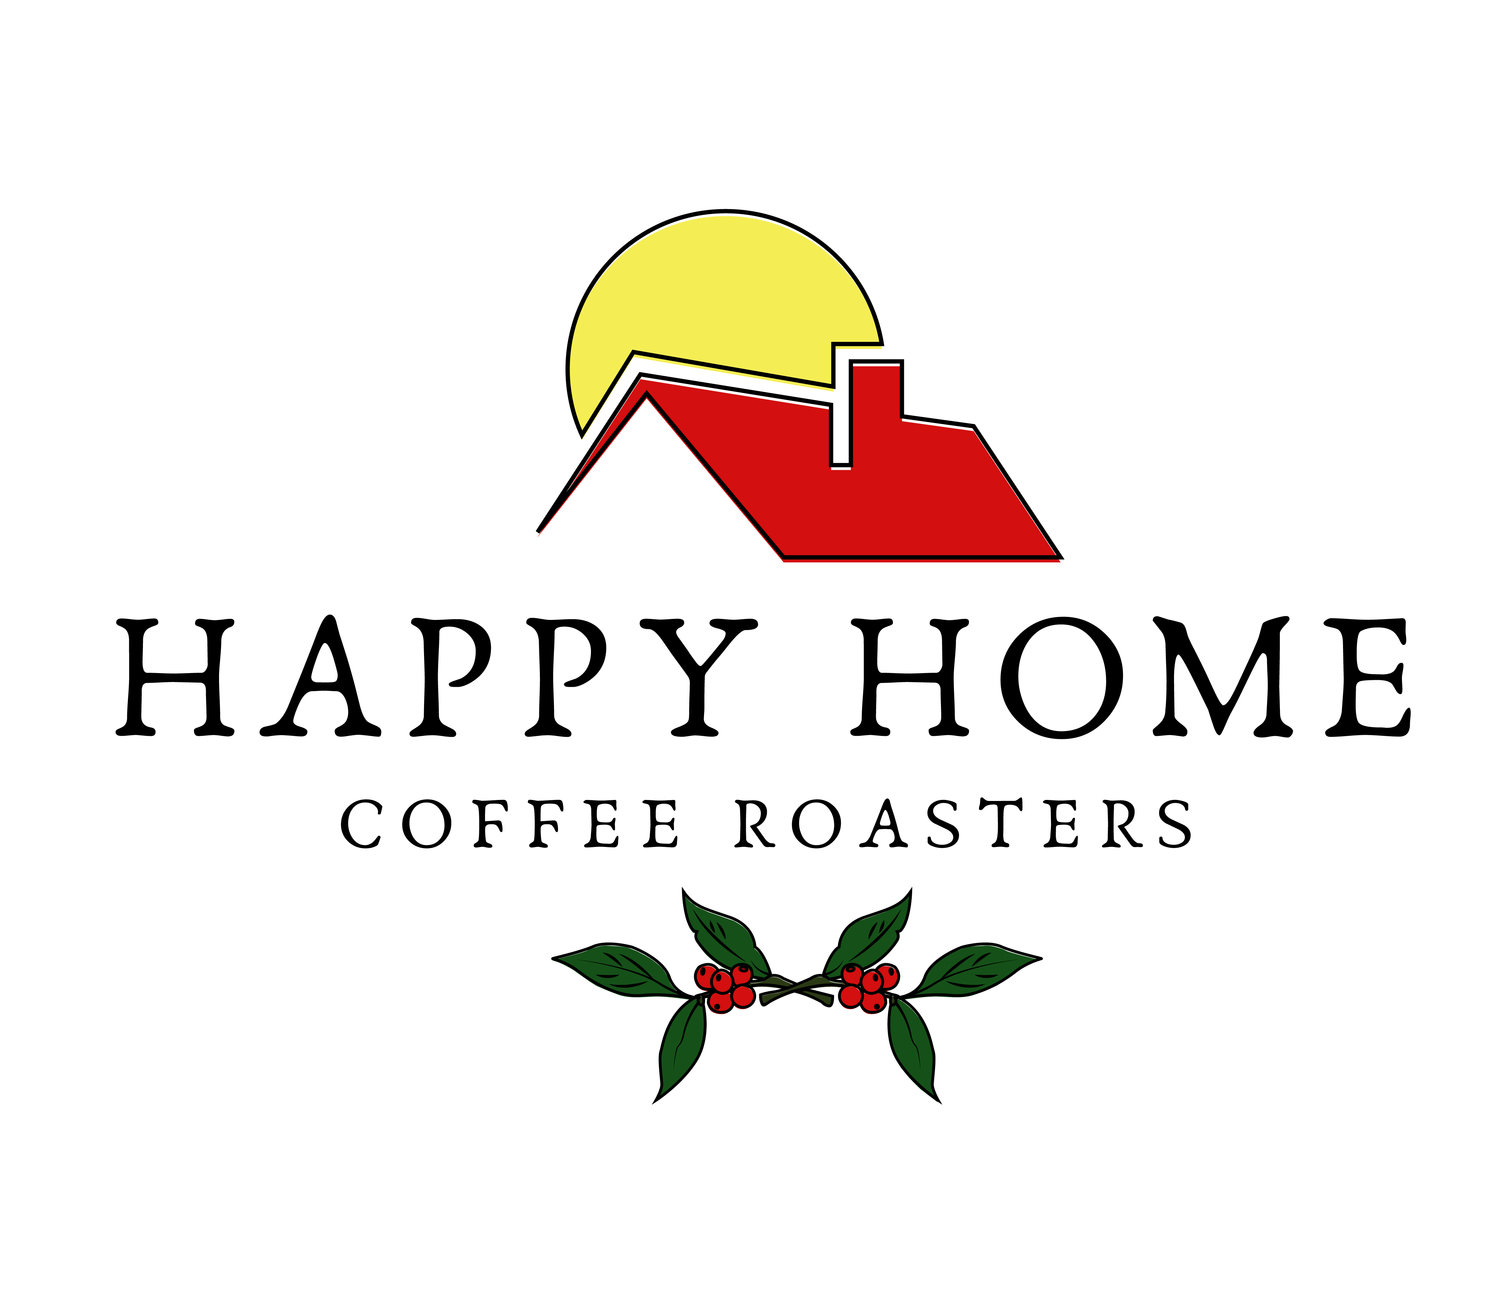 Happy Home Coffee Roasters